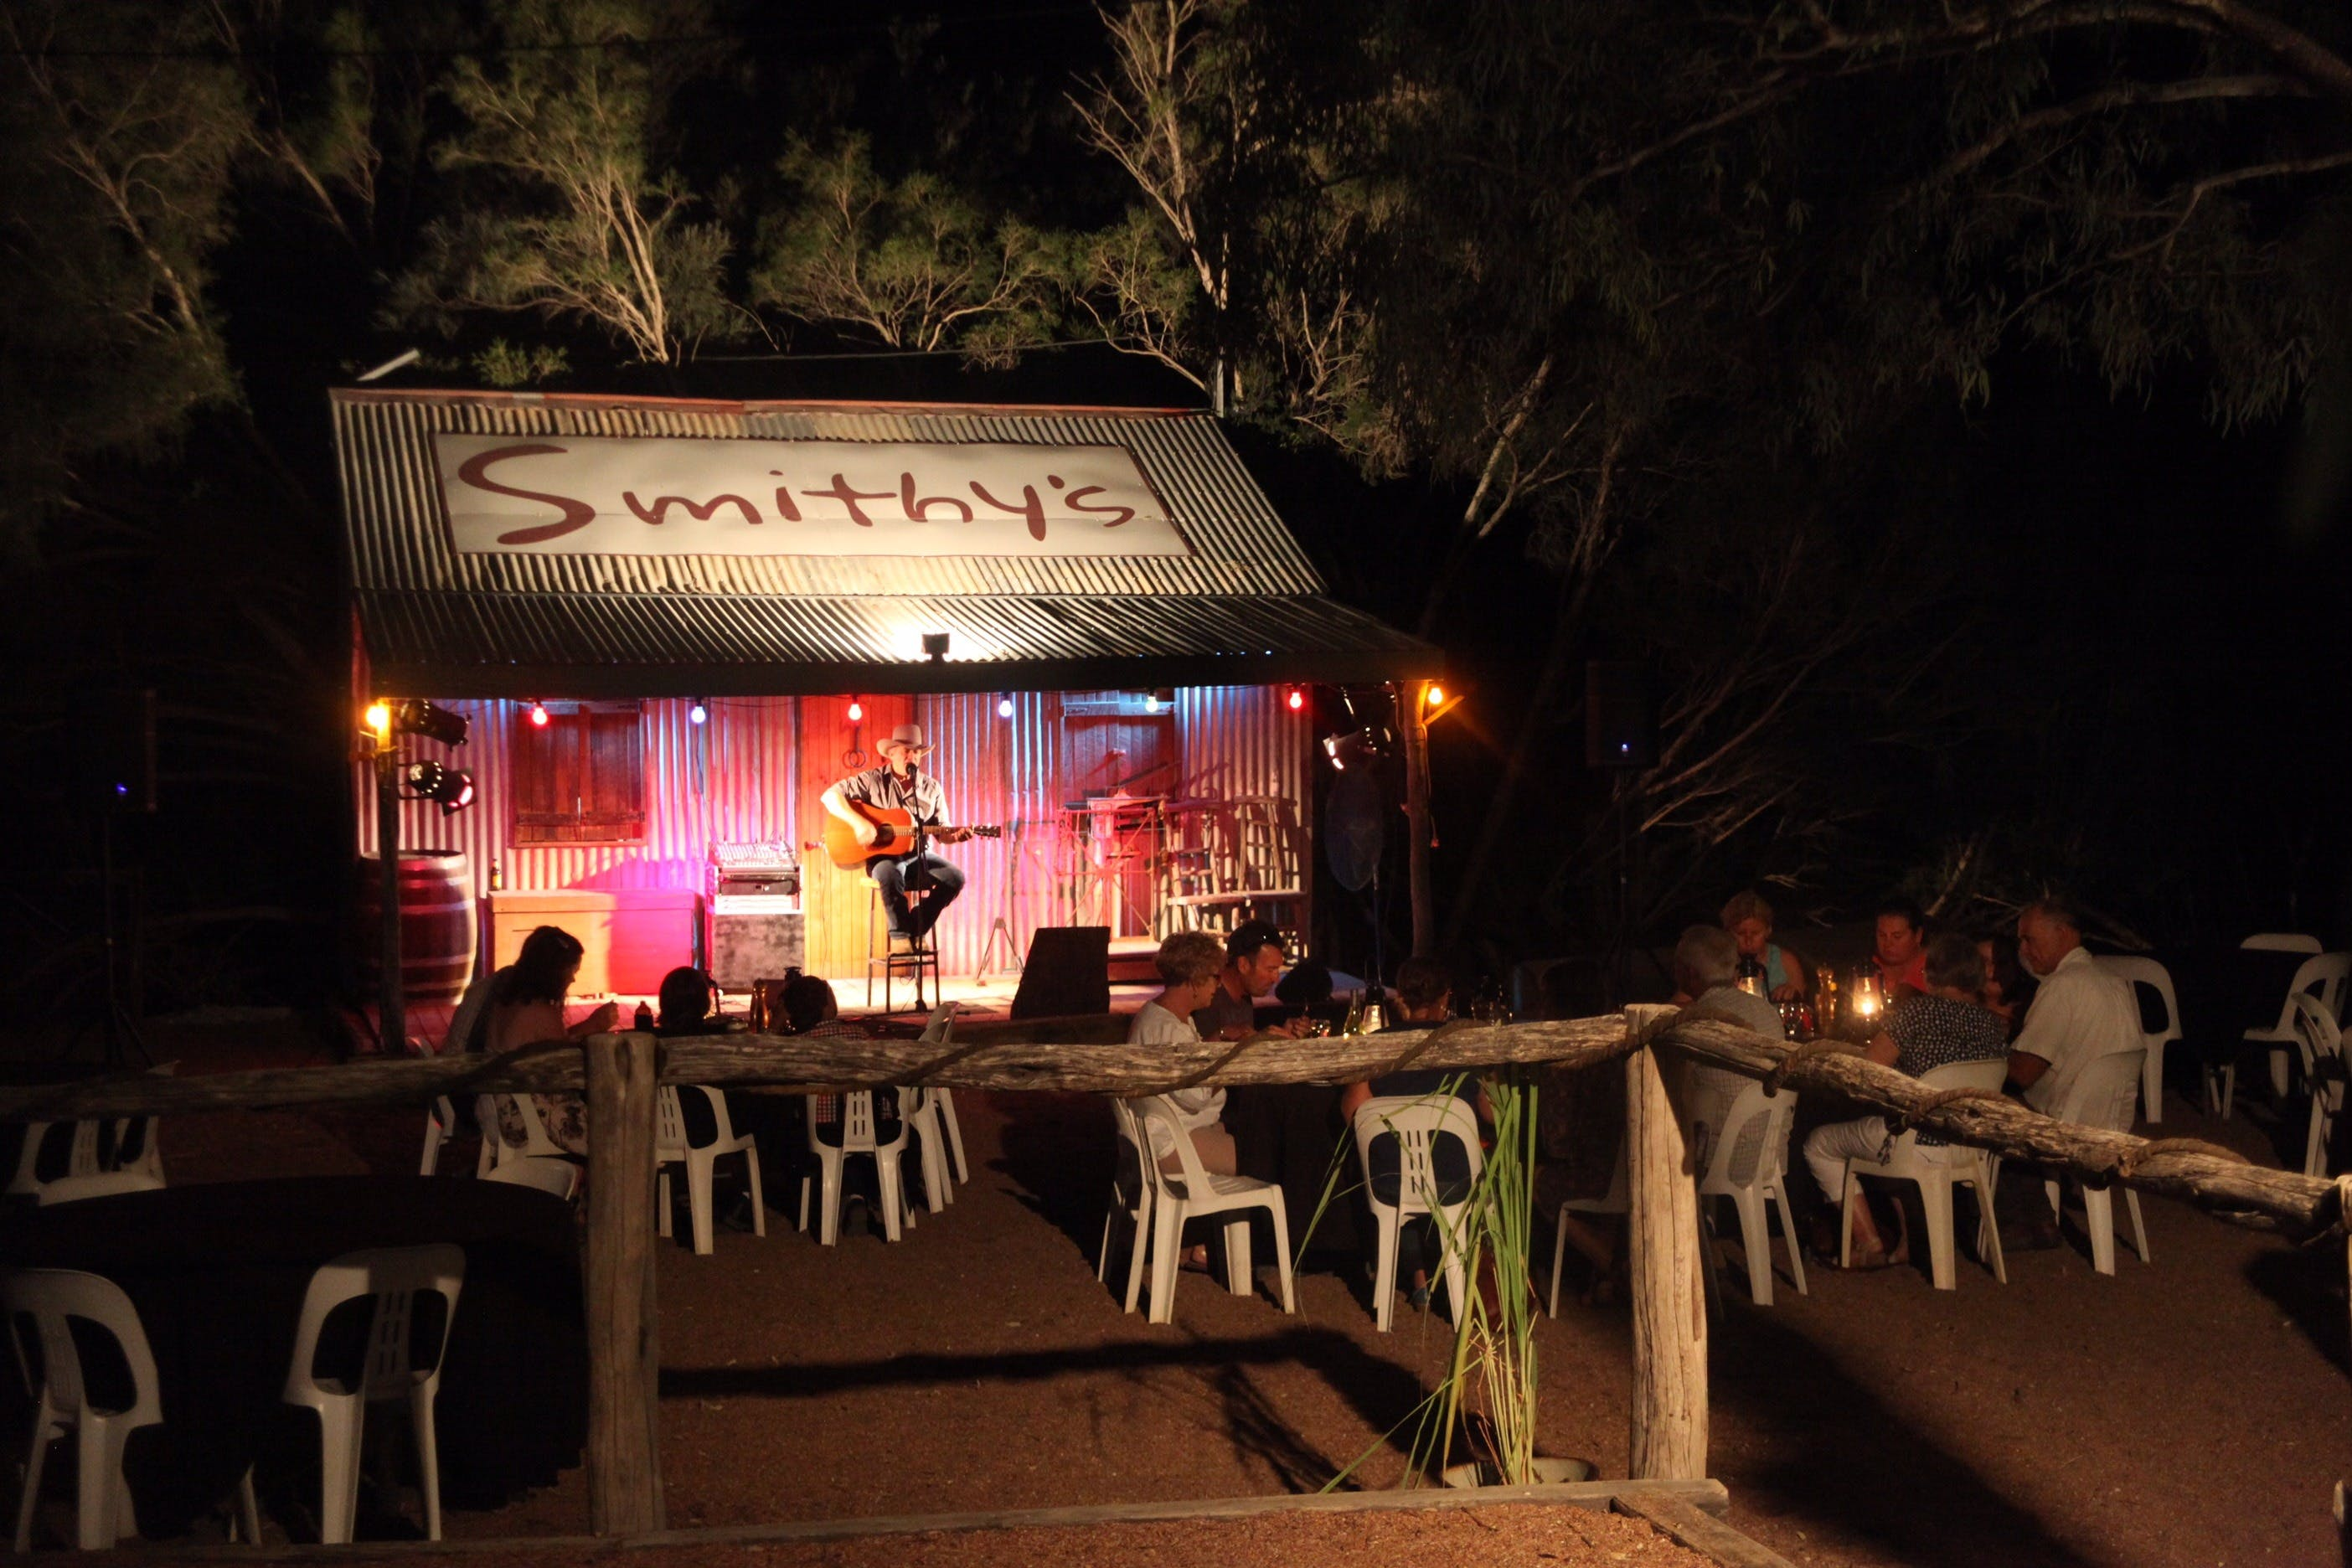 Smithy's Outback Dinner and Show - Accommodation Sunshine Coast